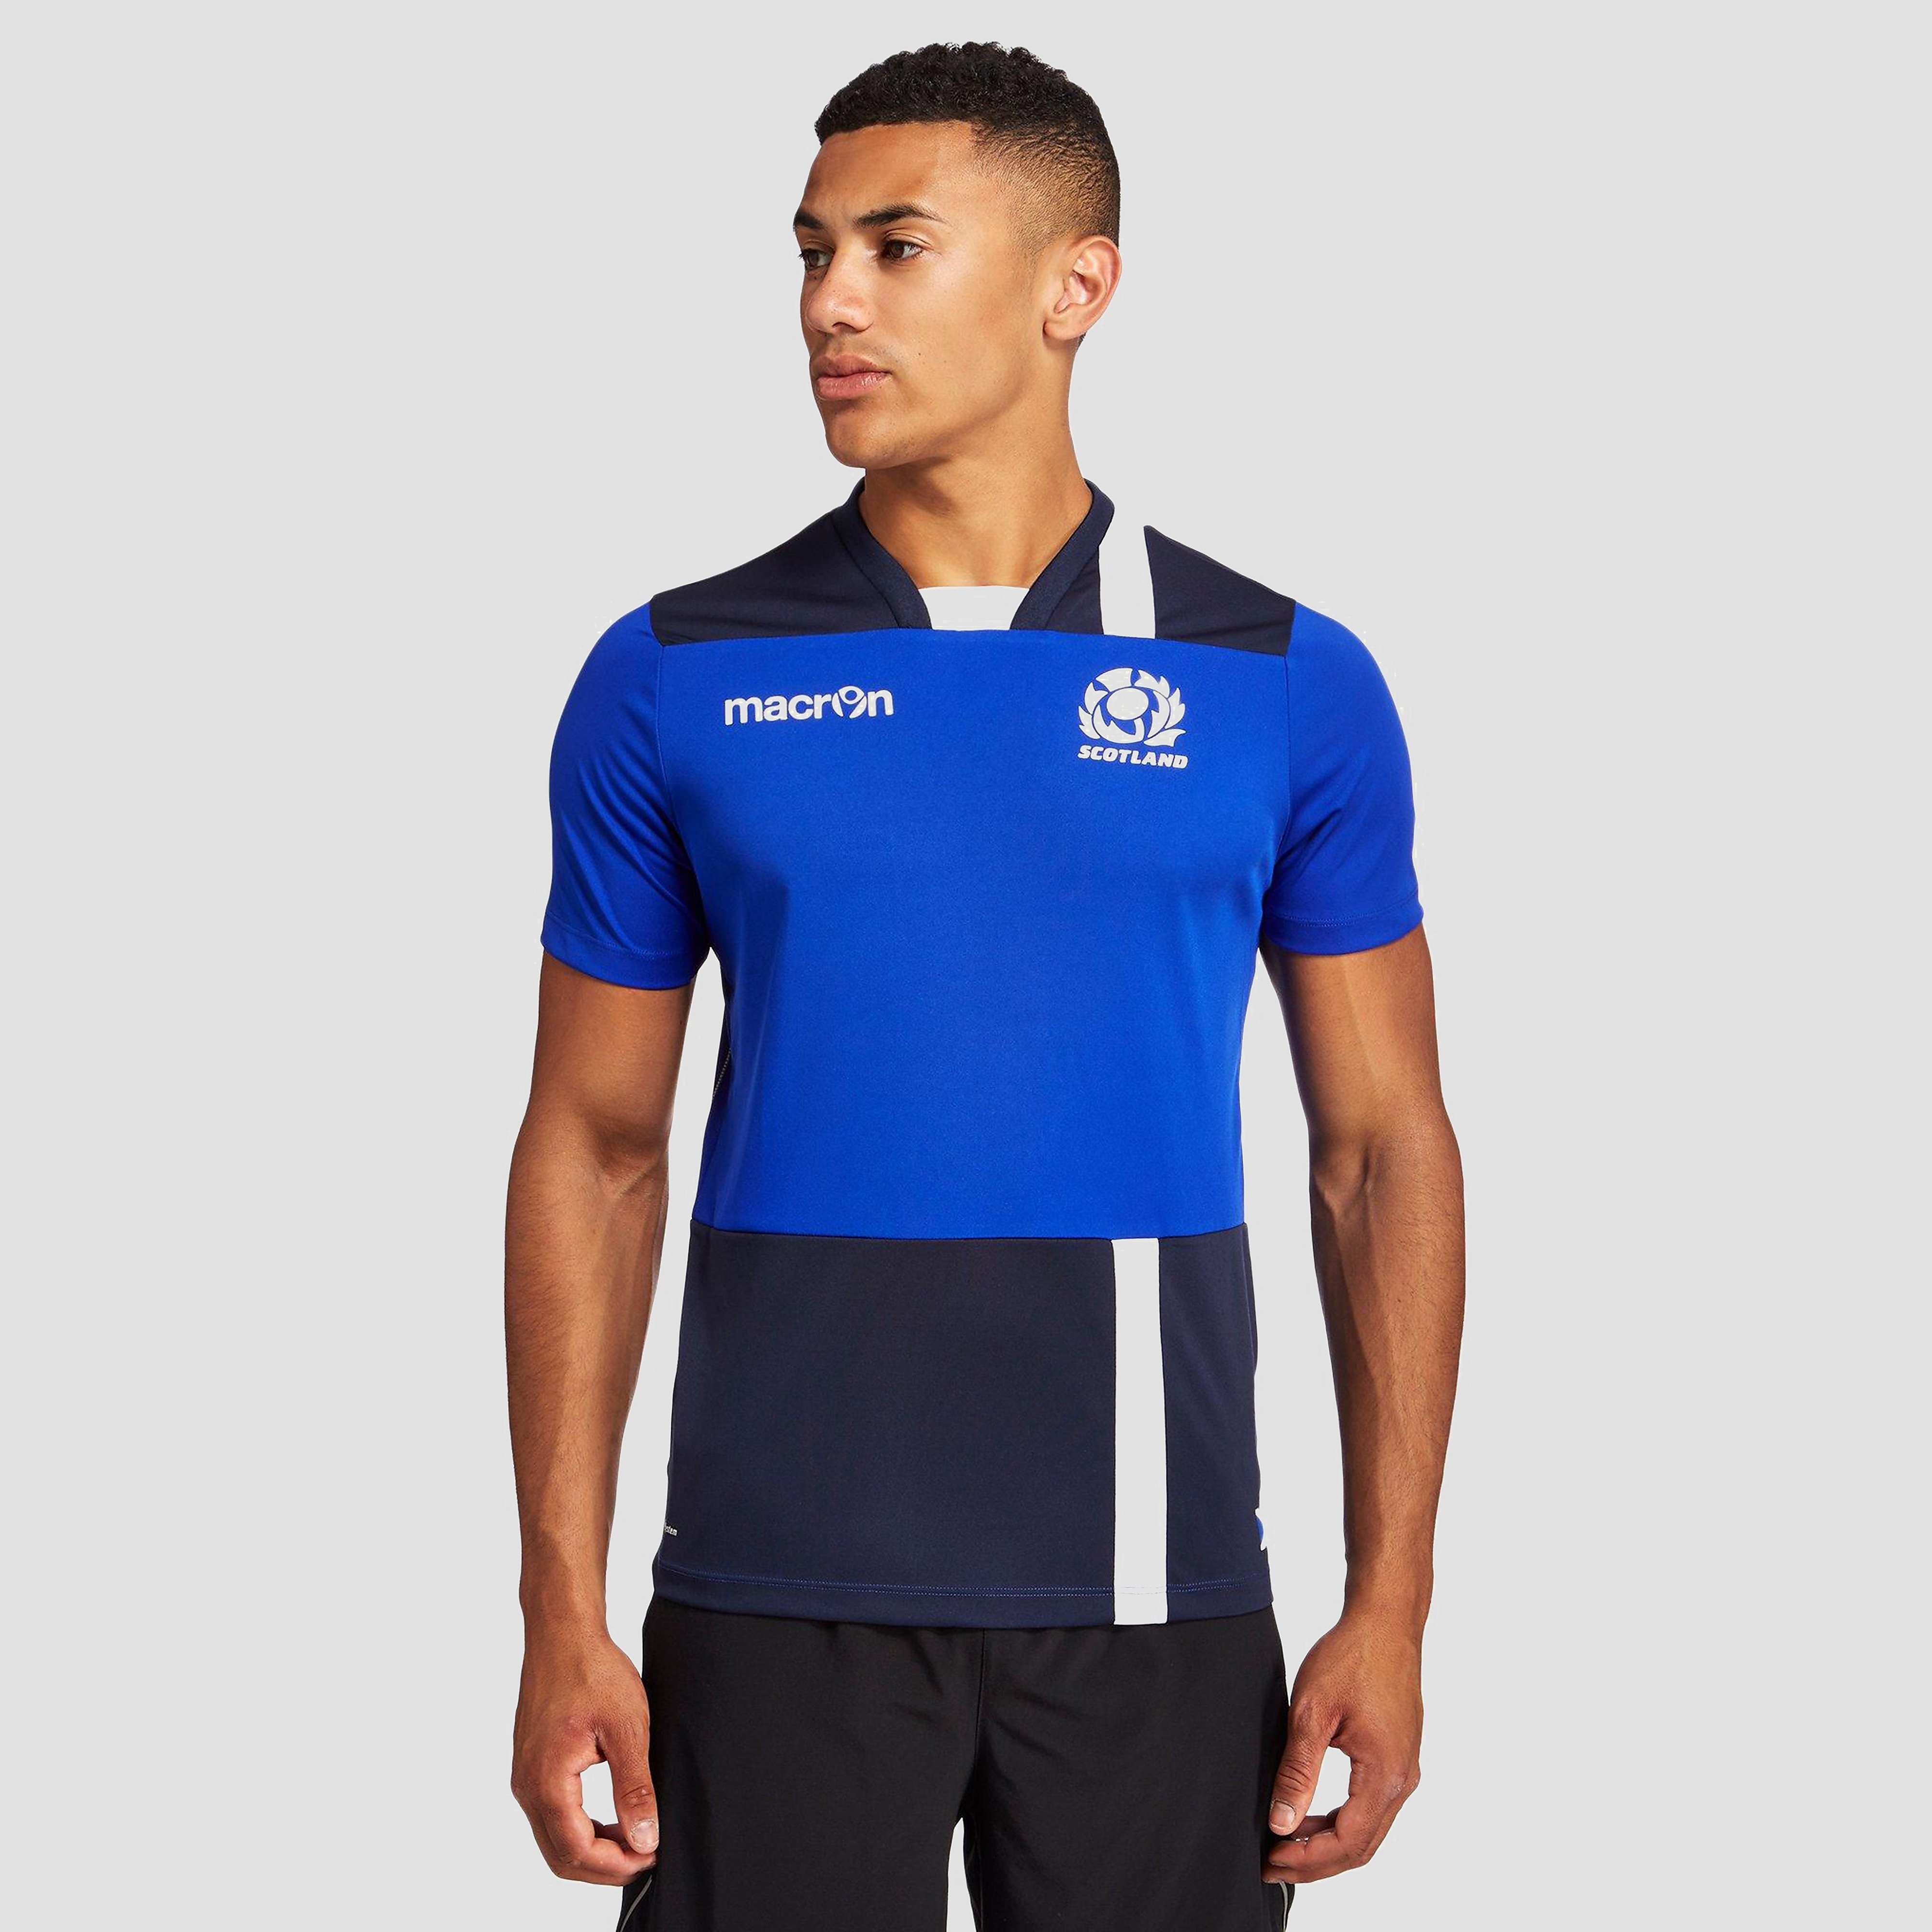 Macron Scotland Men's Poly Shirt